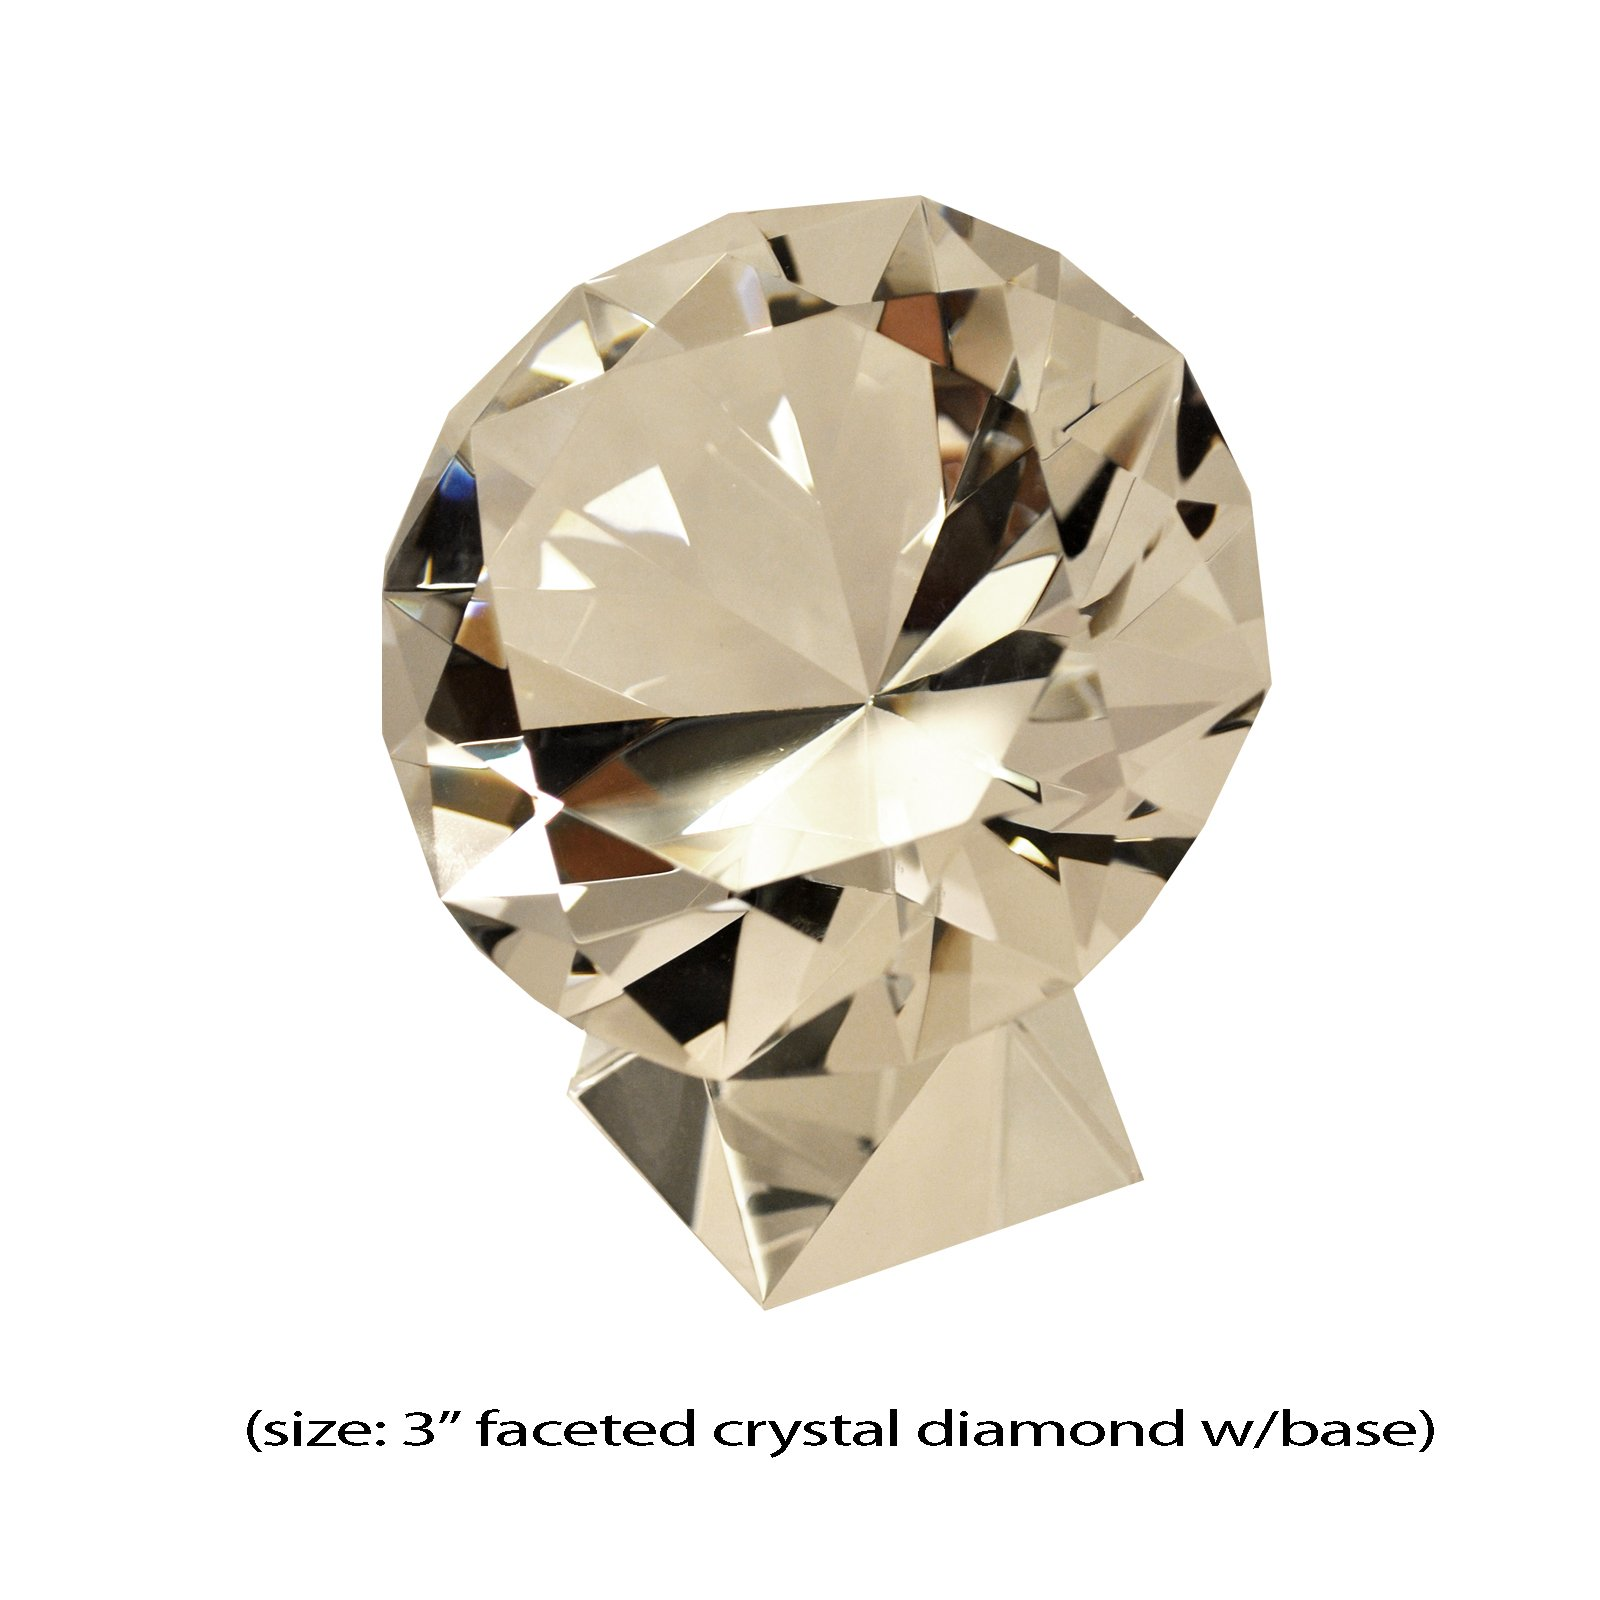 Faceted Crystal Diamond with Base